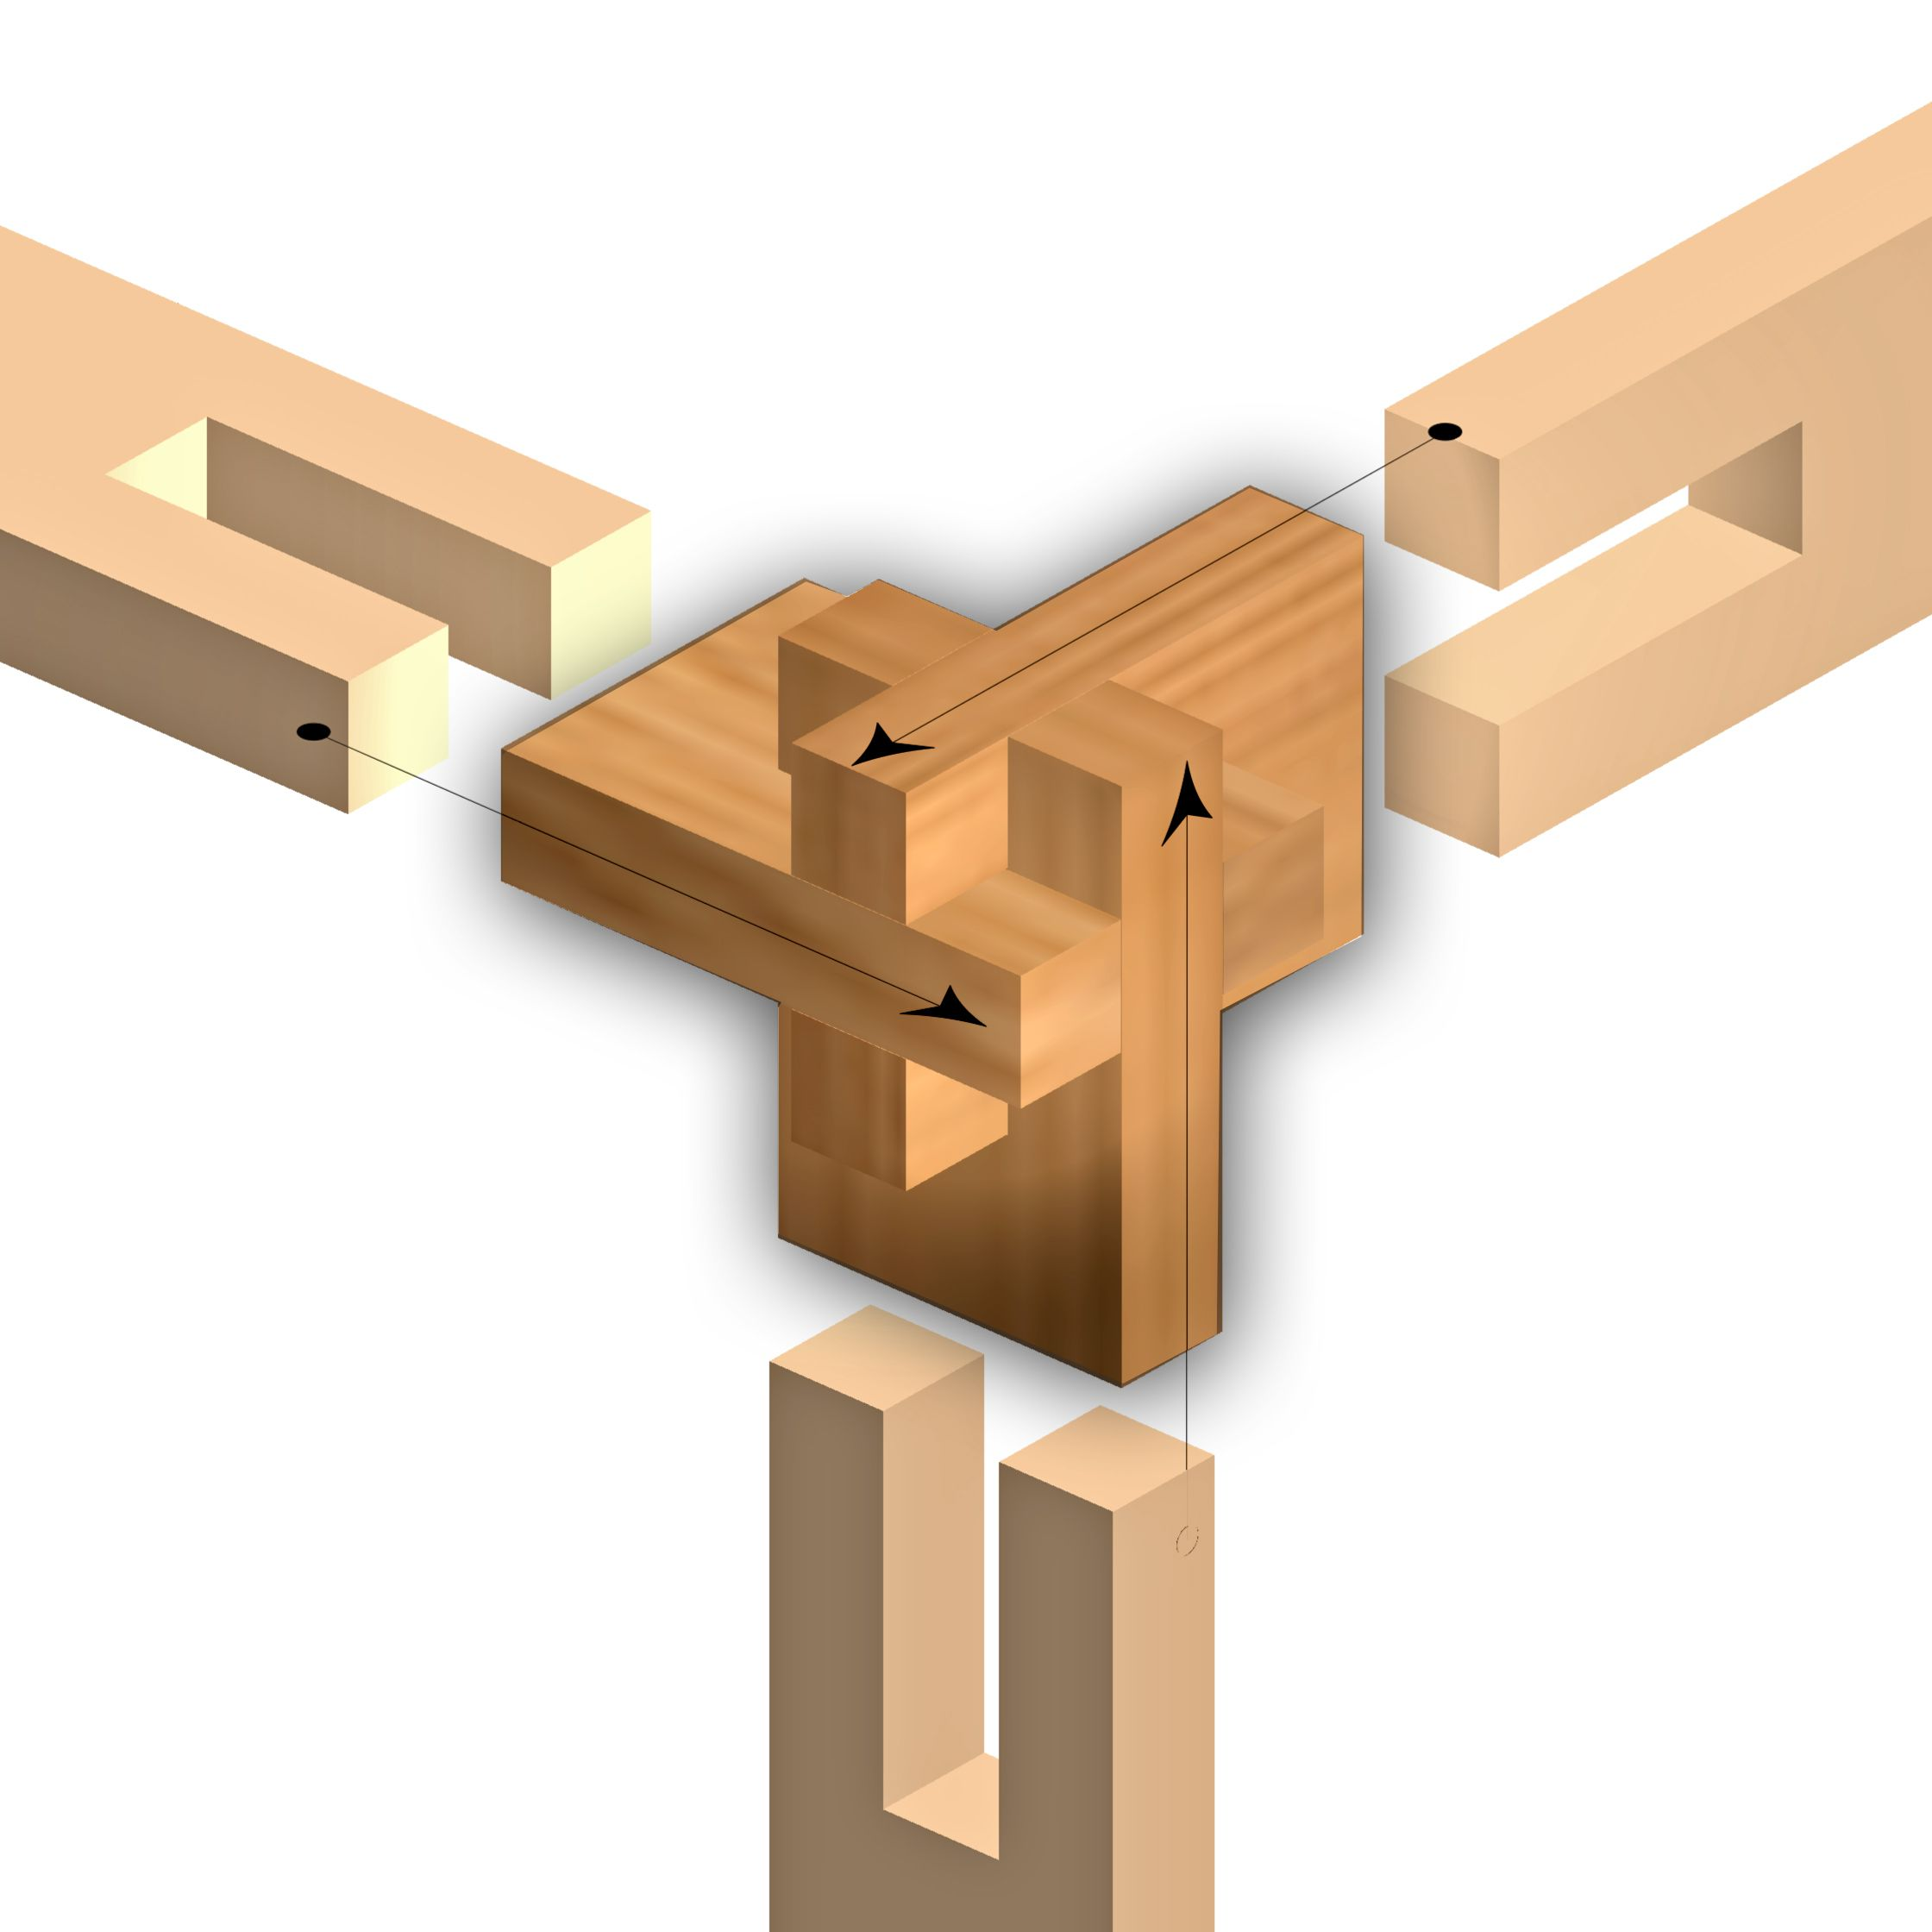 Simple but sophisticated wood assembly Icelandic Design